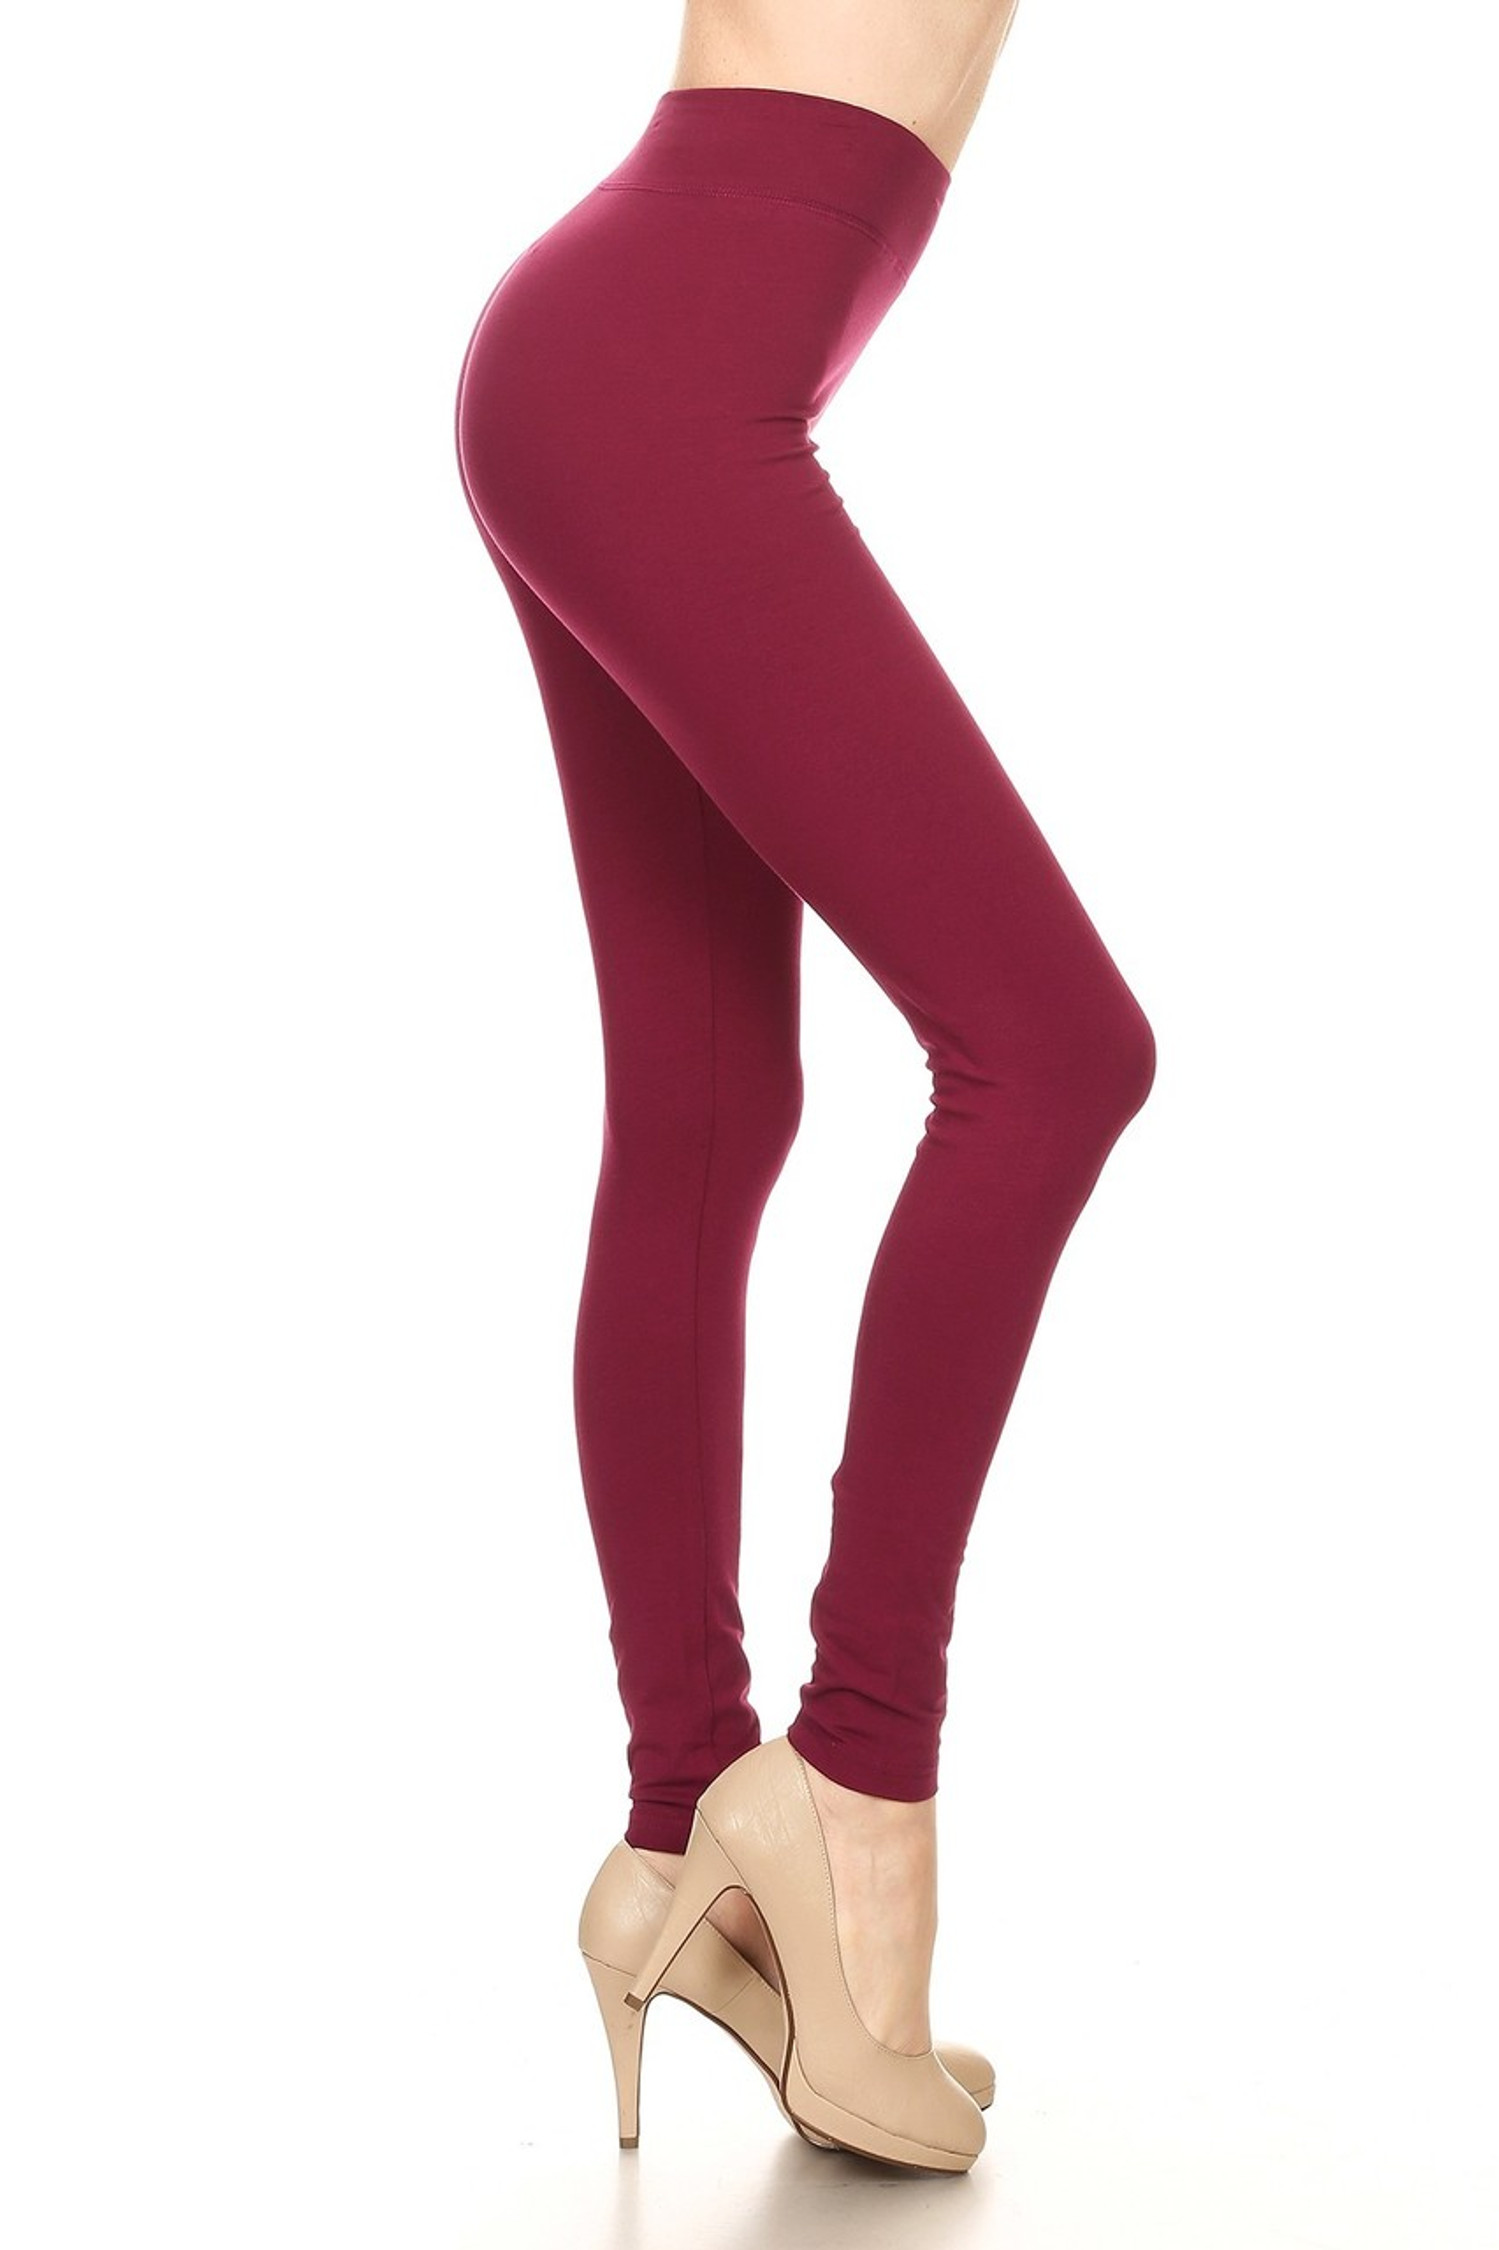 Side image of Burgundy High Waisted Cotton Sport Leggings